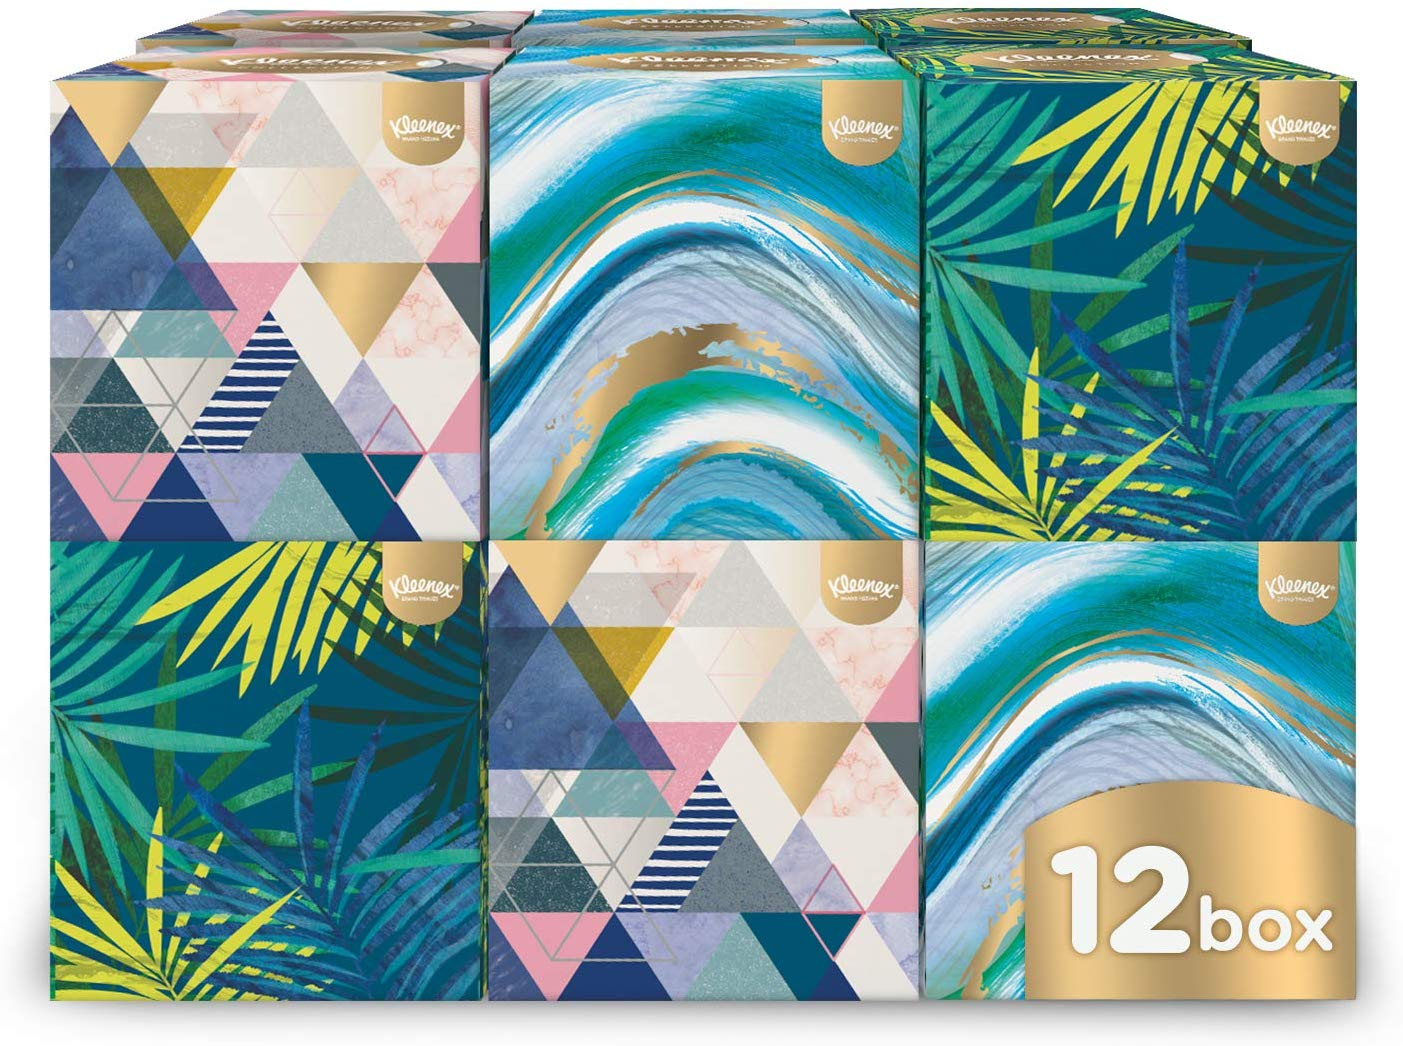 Kleenex Collection Cube – 12 Boxes now £12 prime +4.49 non prime